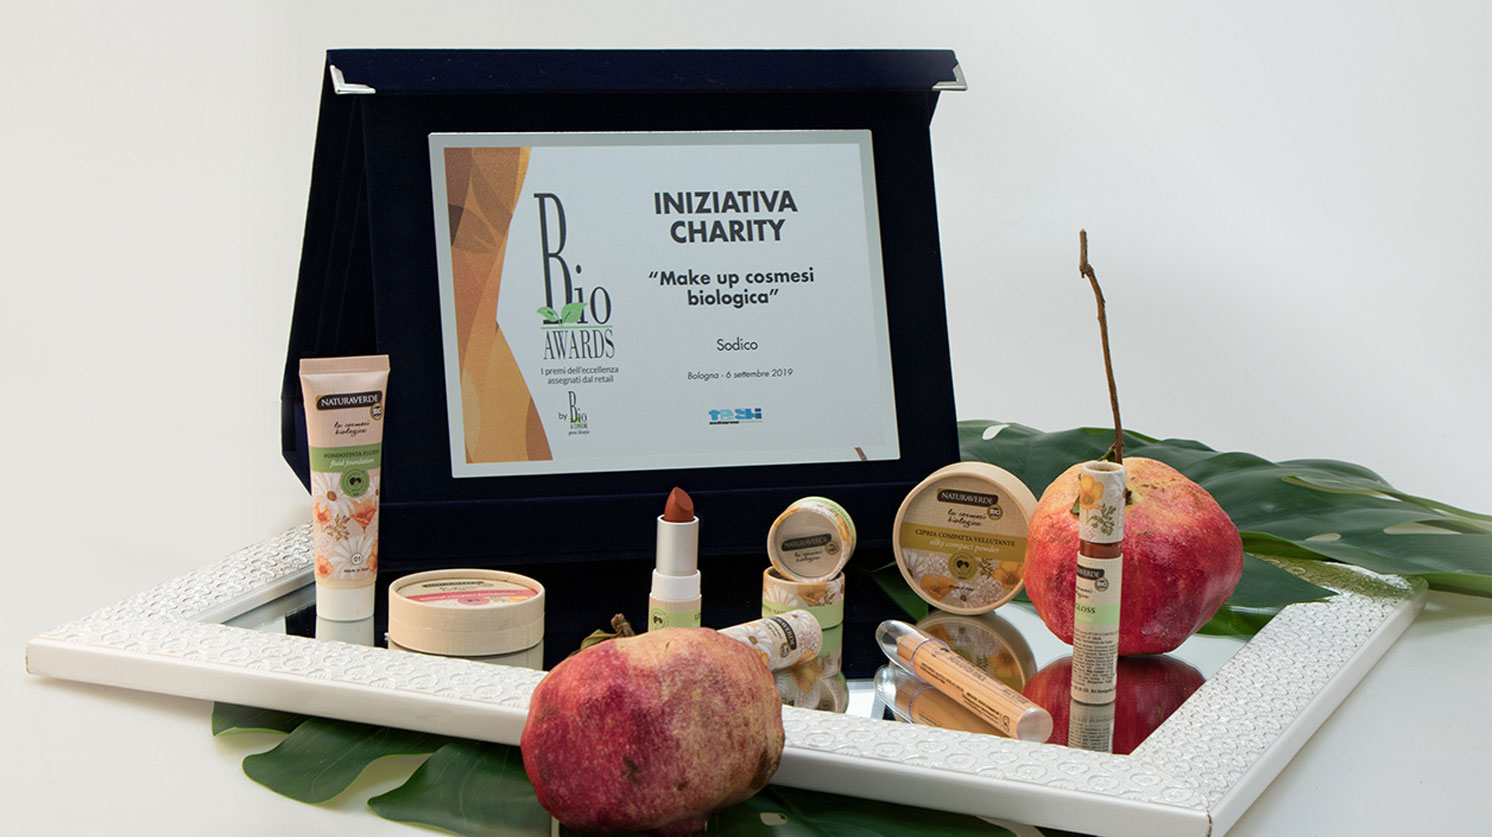 La linea di Make Up Biologico La Cosmesi Biologica Naturaverde Bio si è aggiudicato il premio Bio Awards 2019, categoria Iniziativa Charity